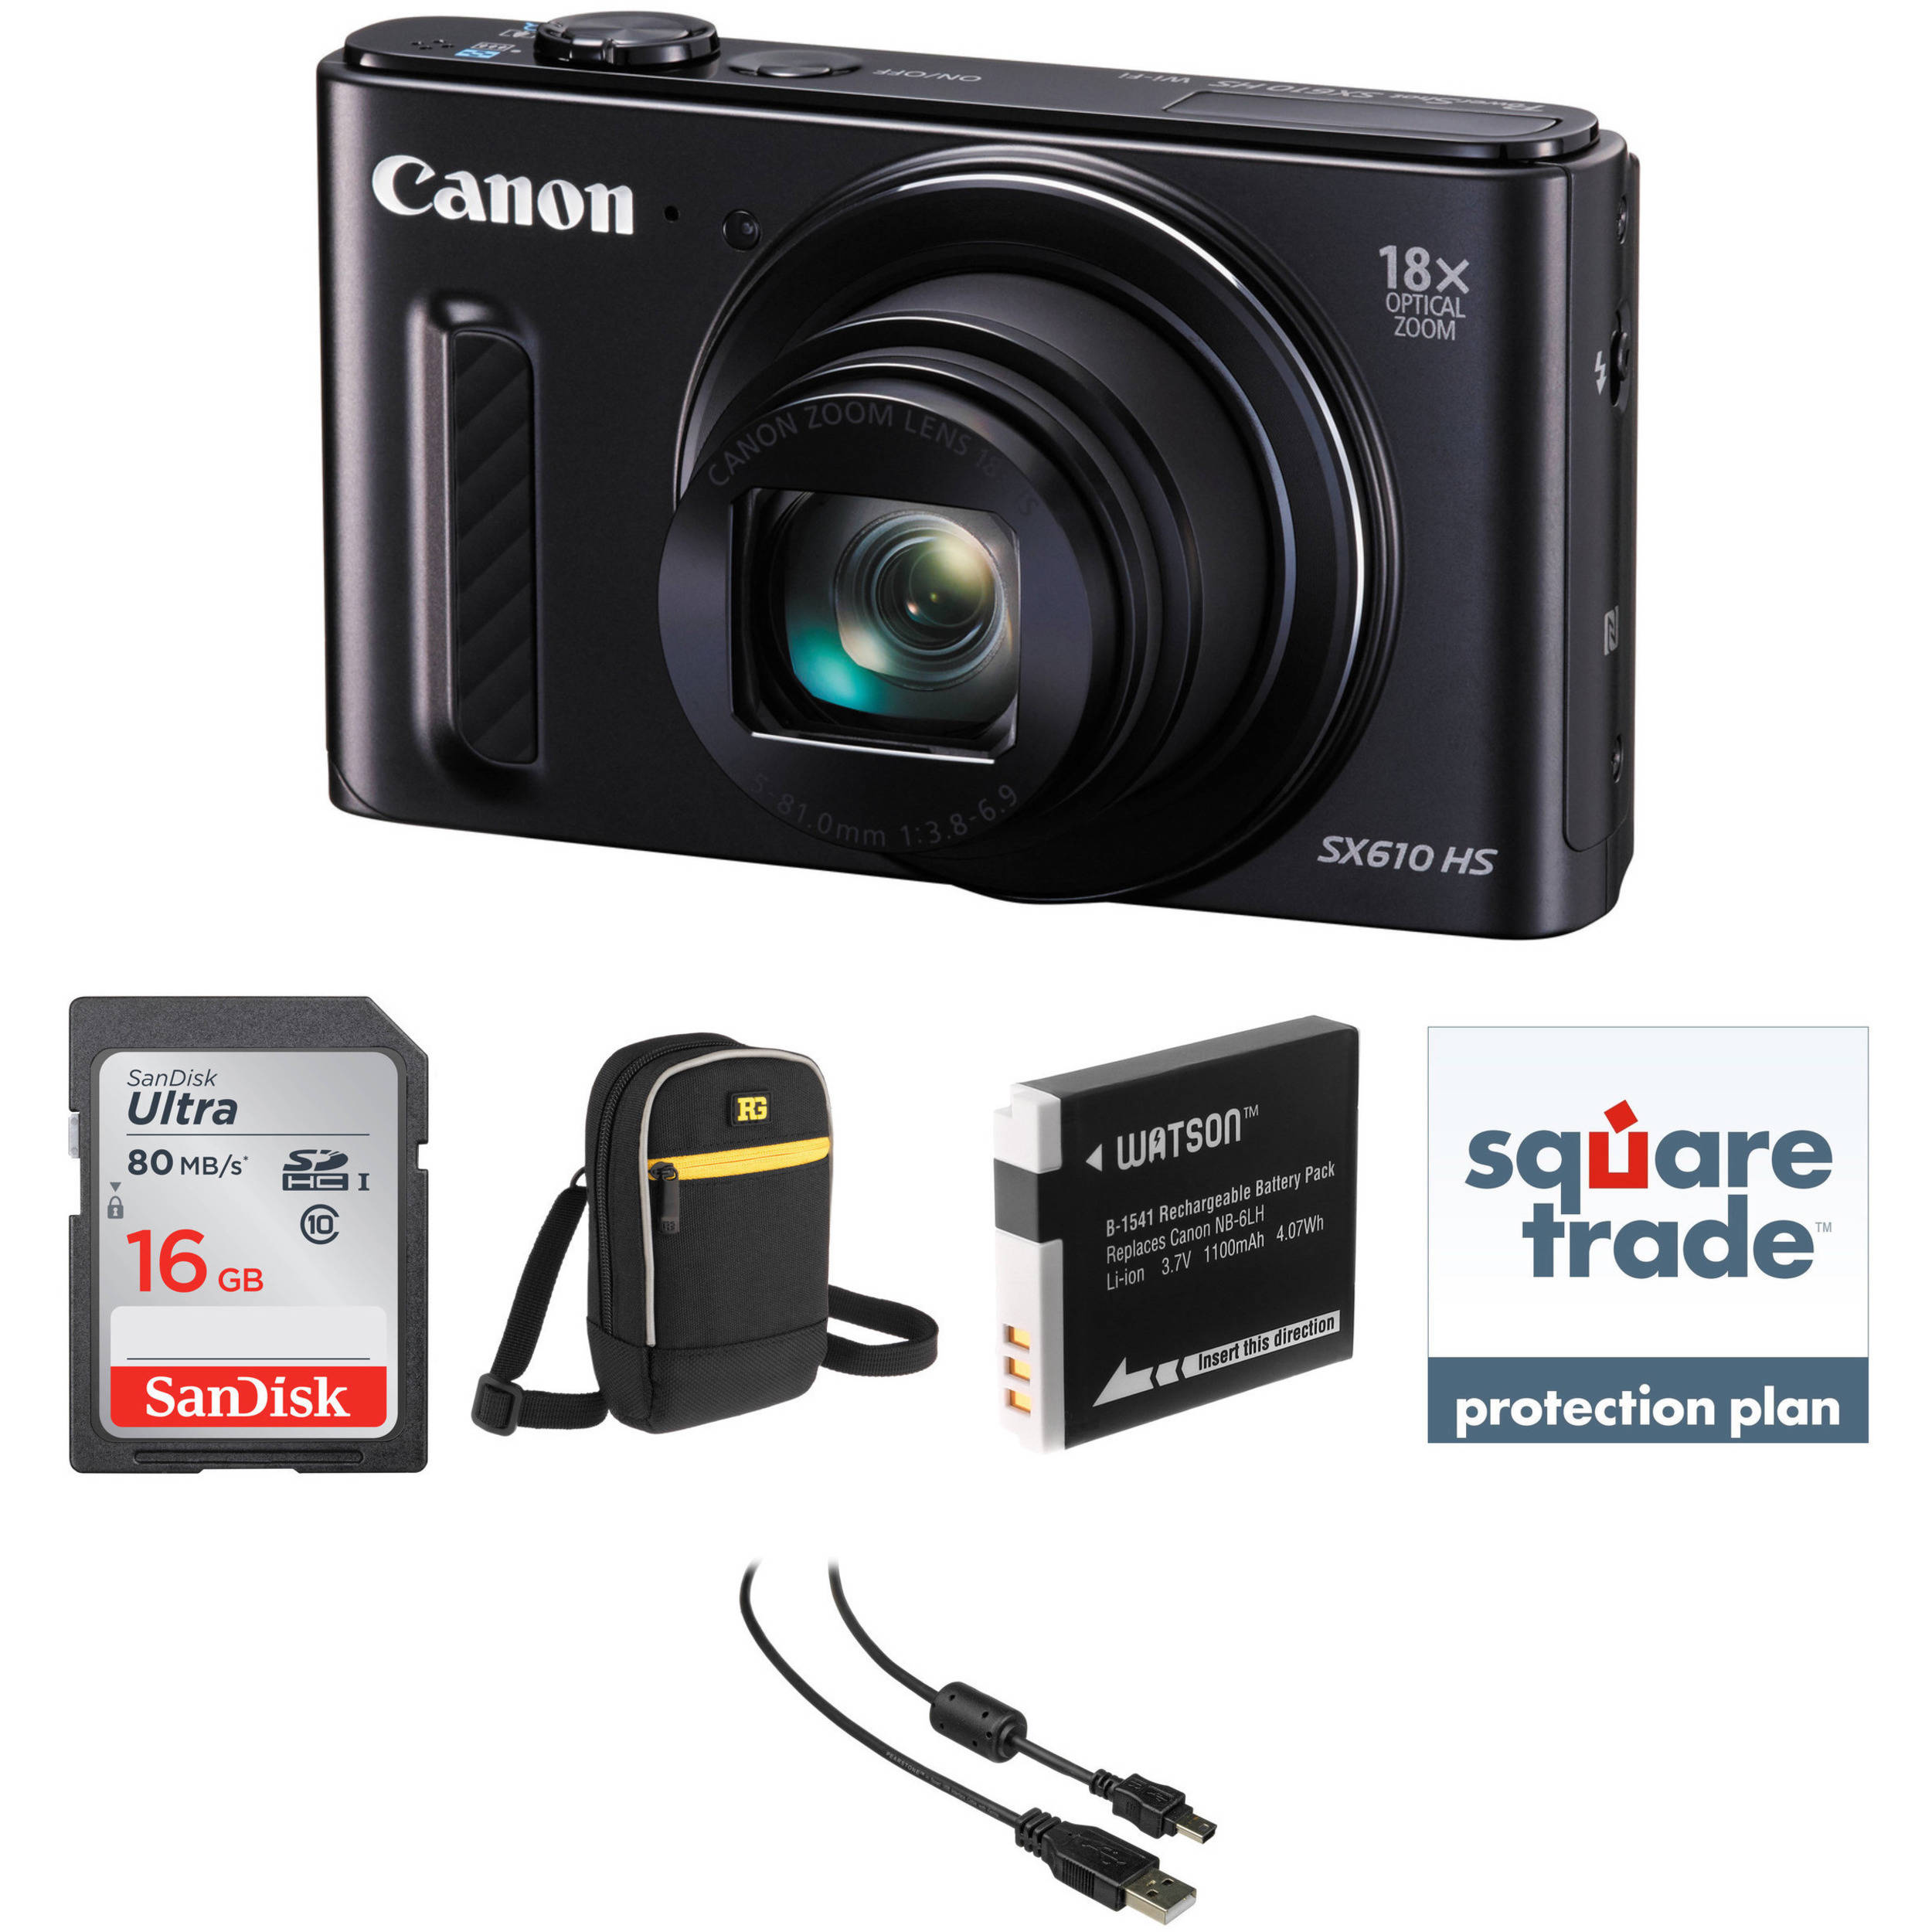 Canon PowerShot SX610 HS Digital Camera Deluxe Kit Black BH